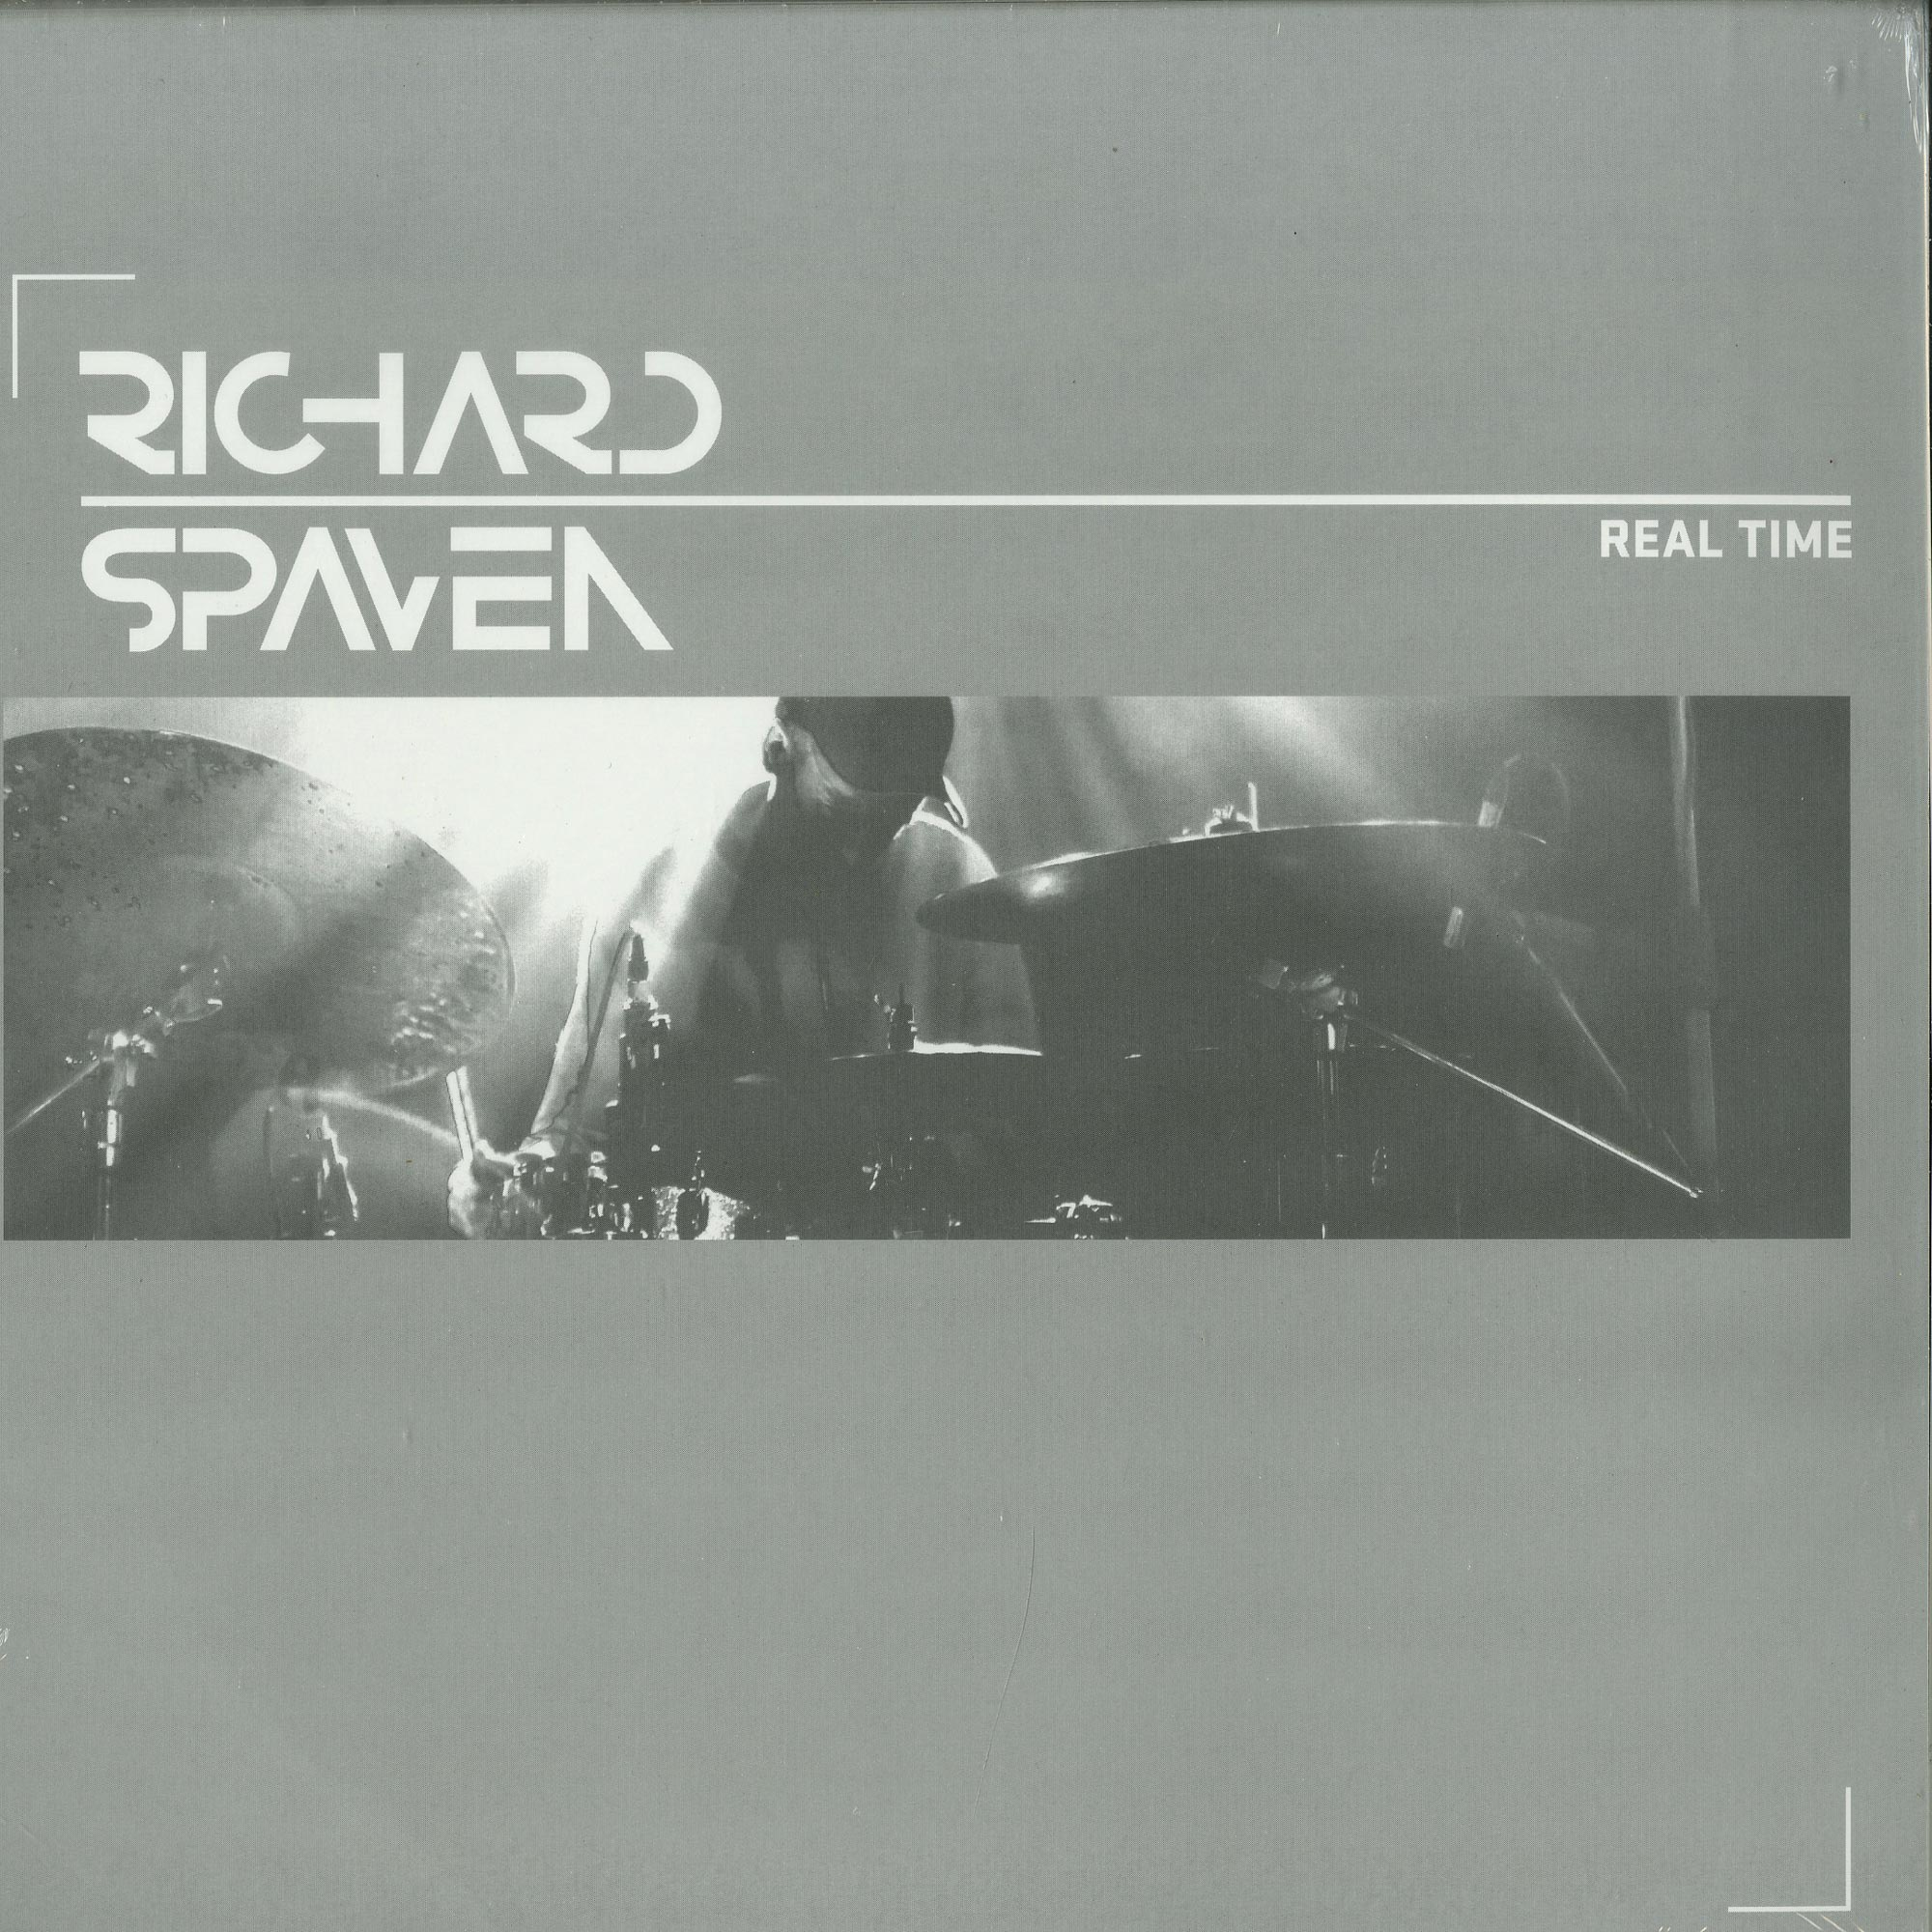 Richard Spaven - REAL TIME